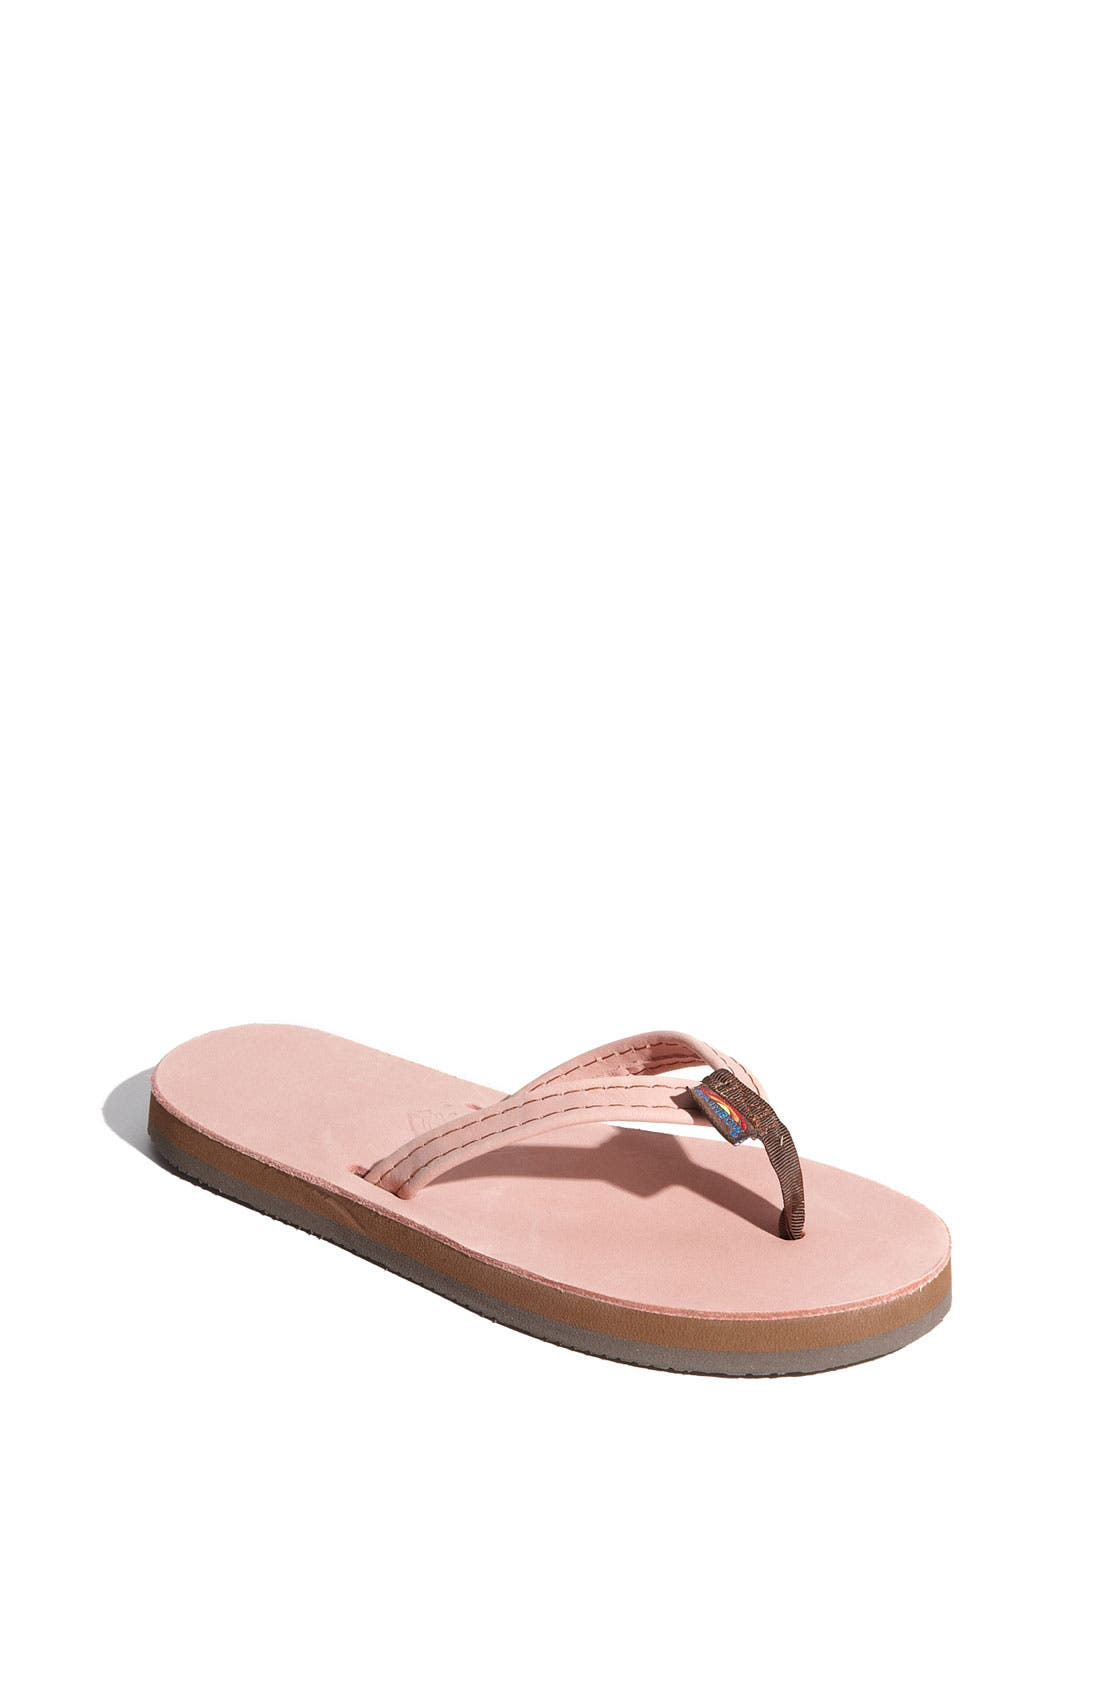 Alternate Image 1 Selected - Rainbow Leather Flip Flop (Toddler, Little Kid & Big Kid)